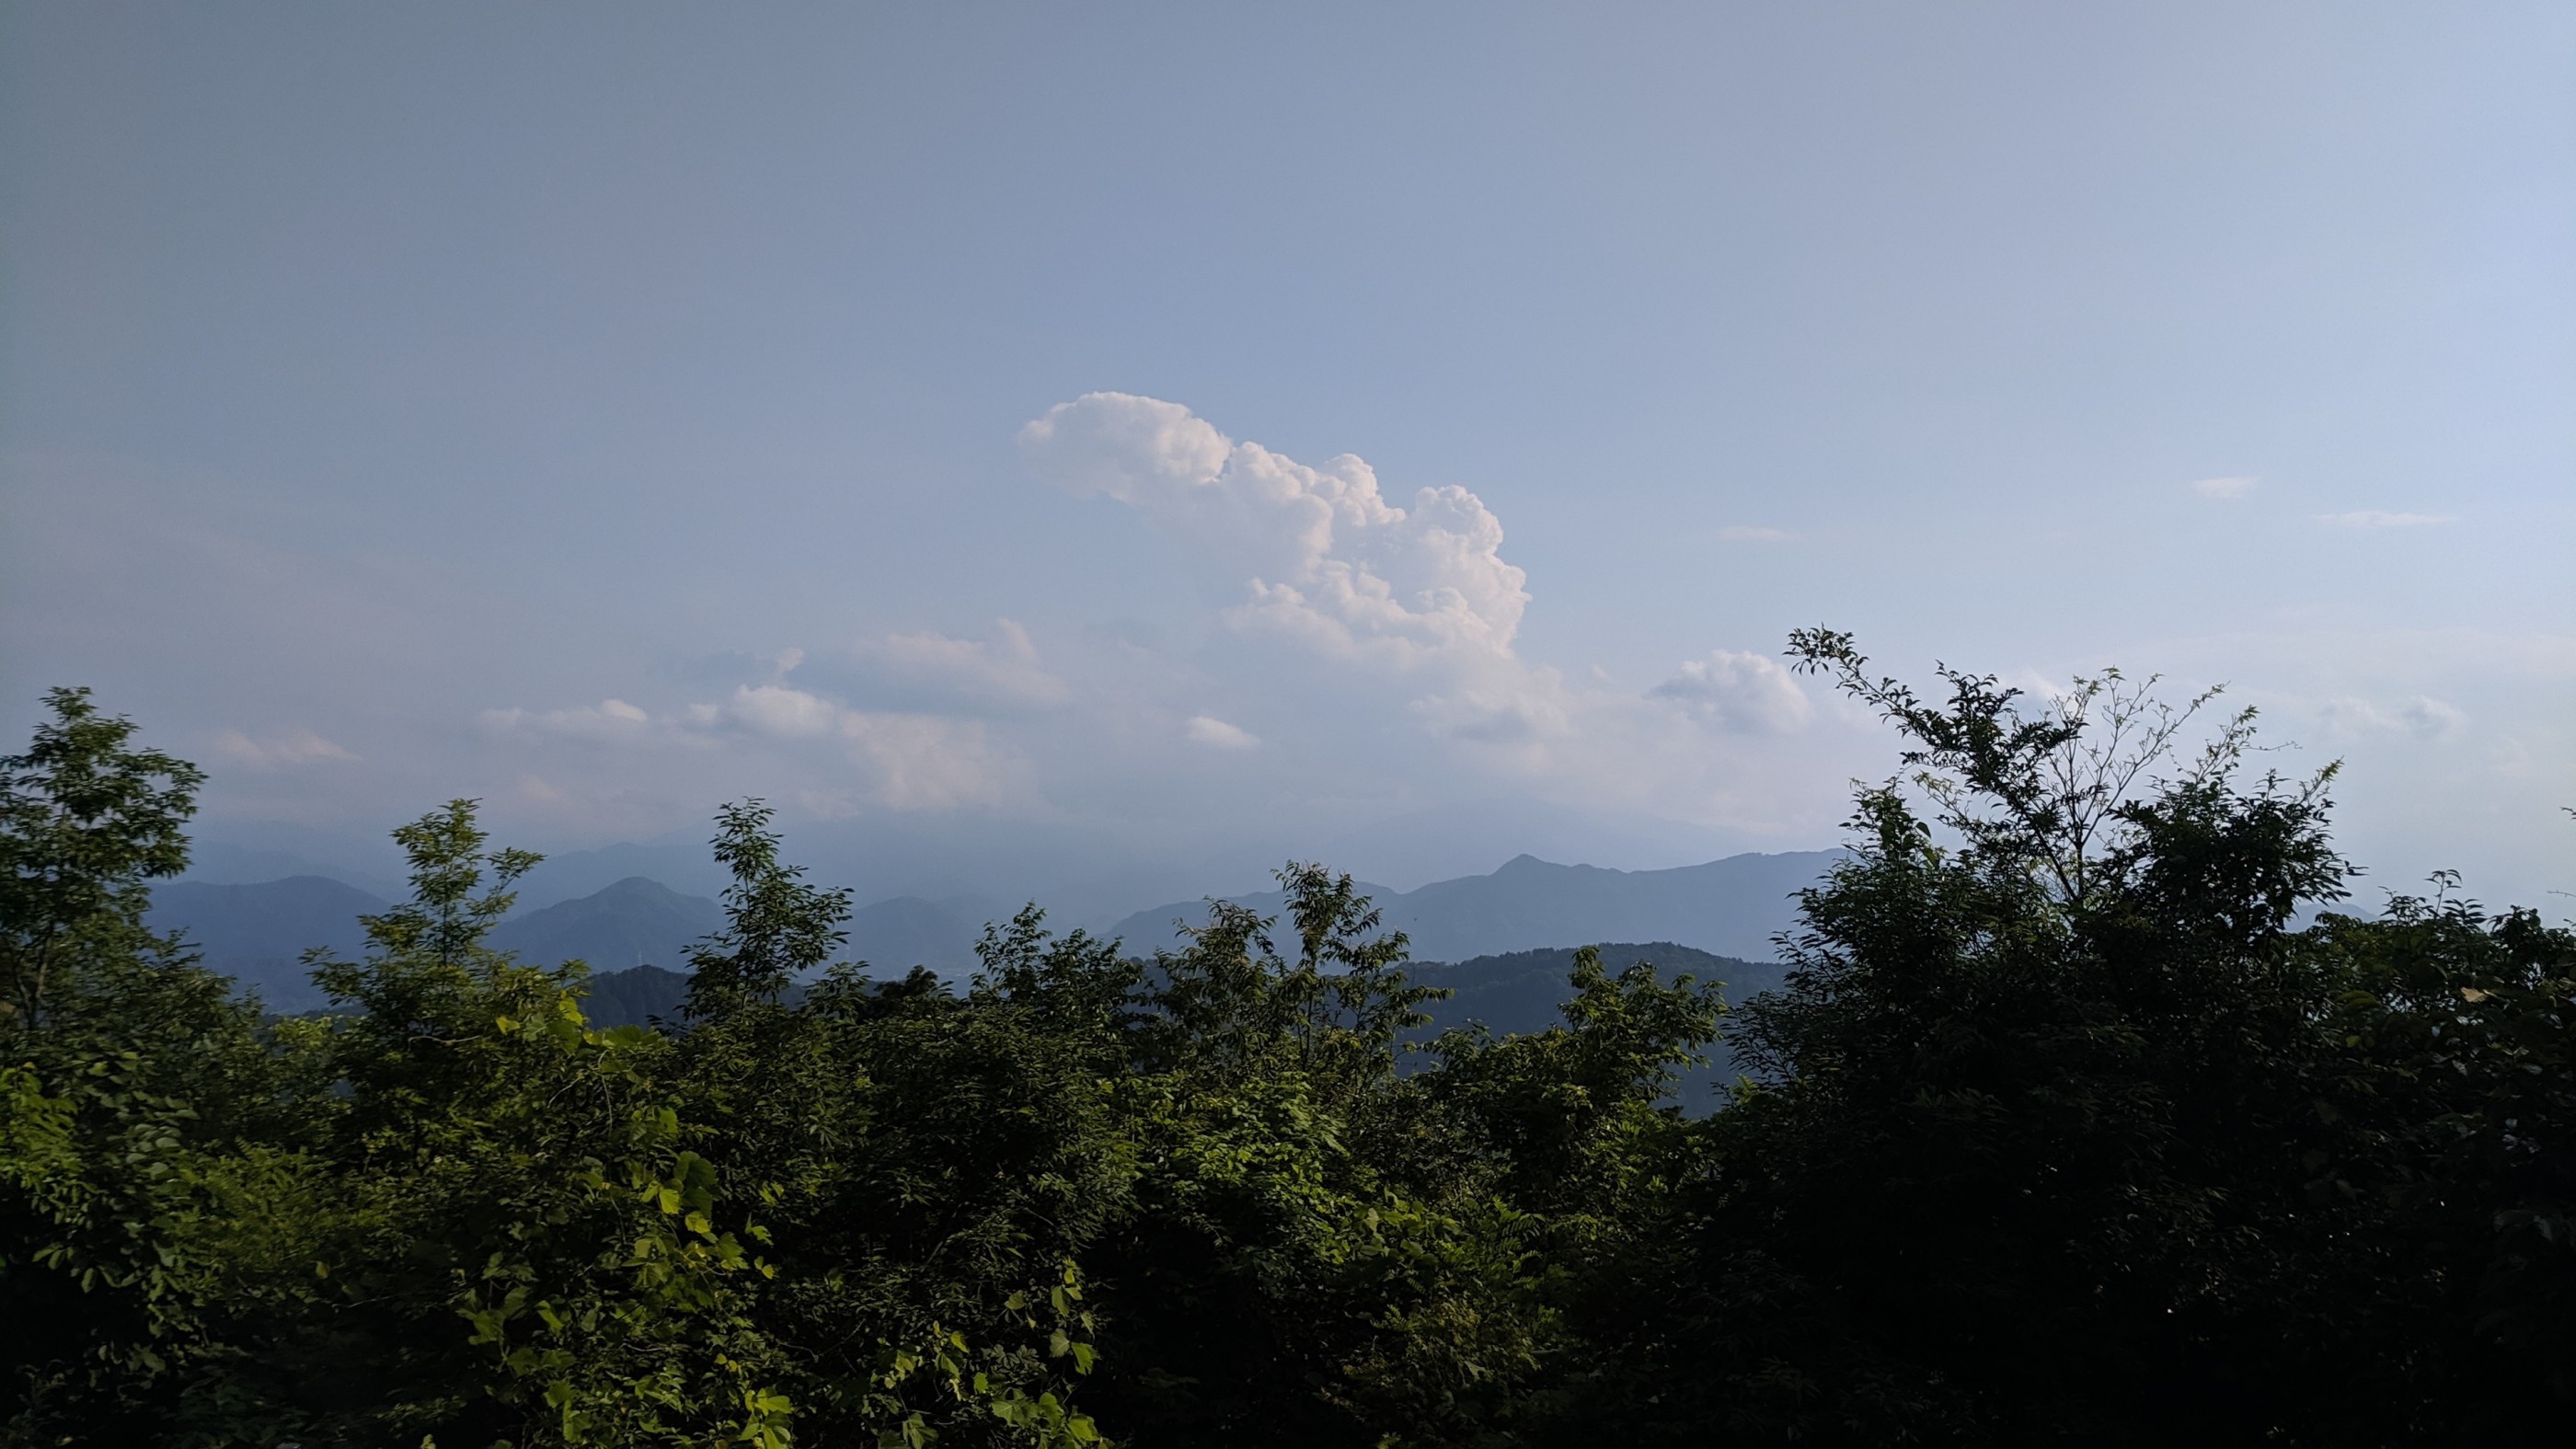 The view from the top of Mount Takao